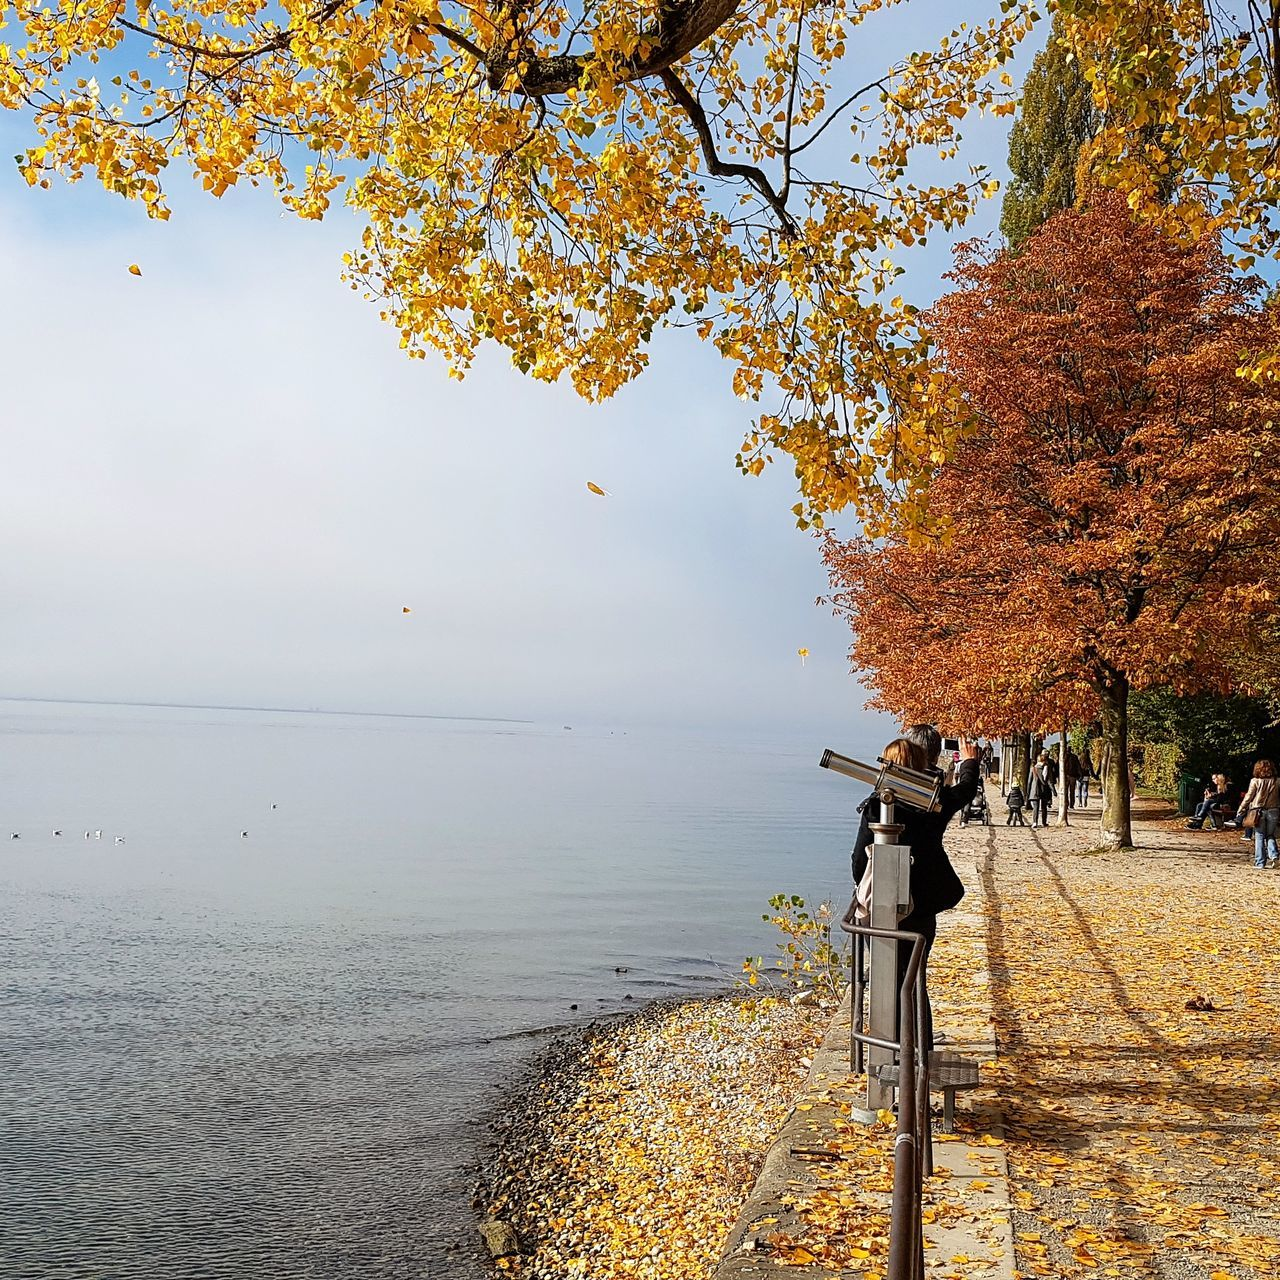 autumn, change, nature, beauty in nature, tree, leaf, water, scenics, tranquility, tranquil scene, outdoors, day, photography themes, sea, branch, no people, horizon over water, sky